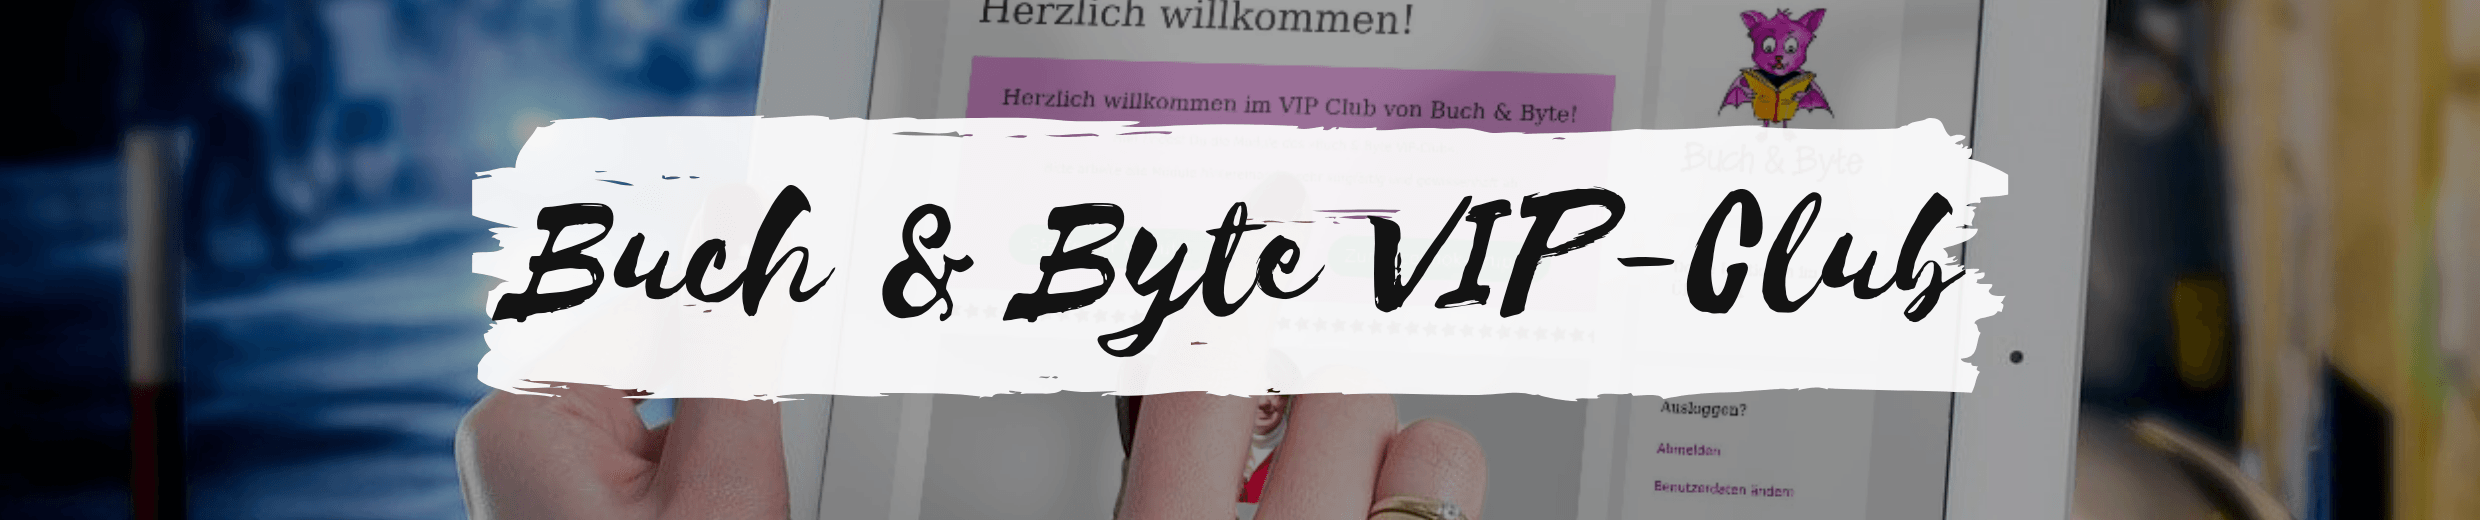 Buch & Byte VIP-Club